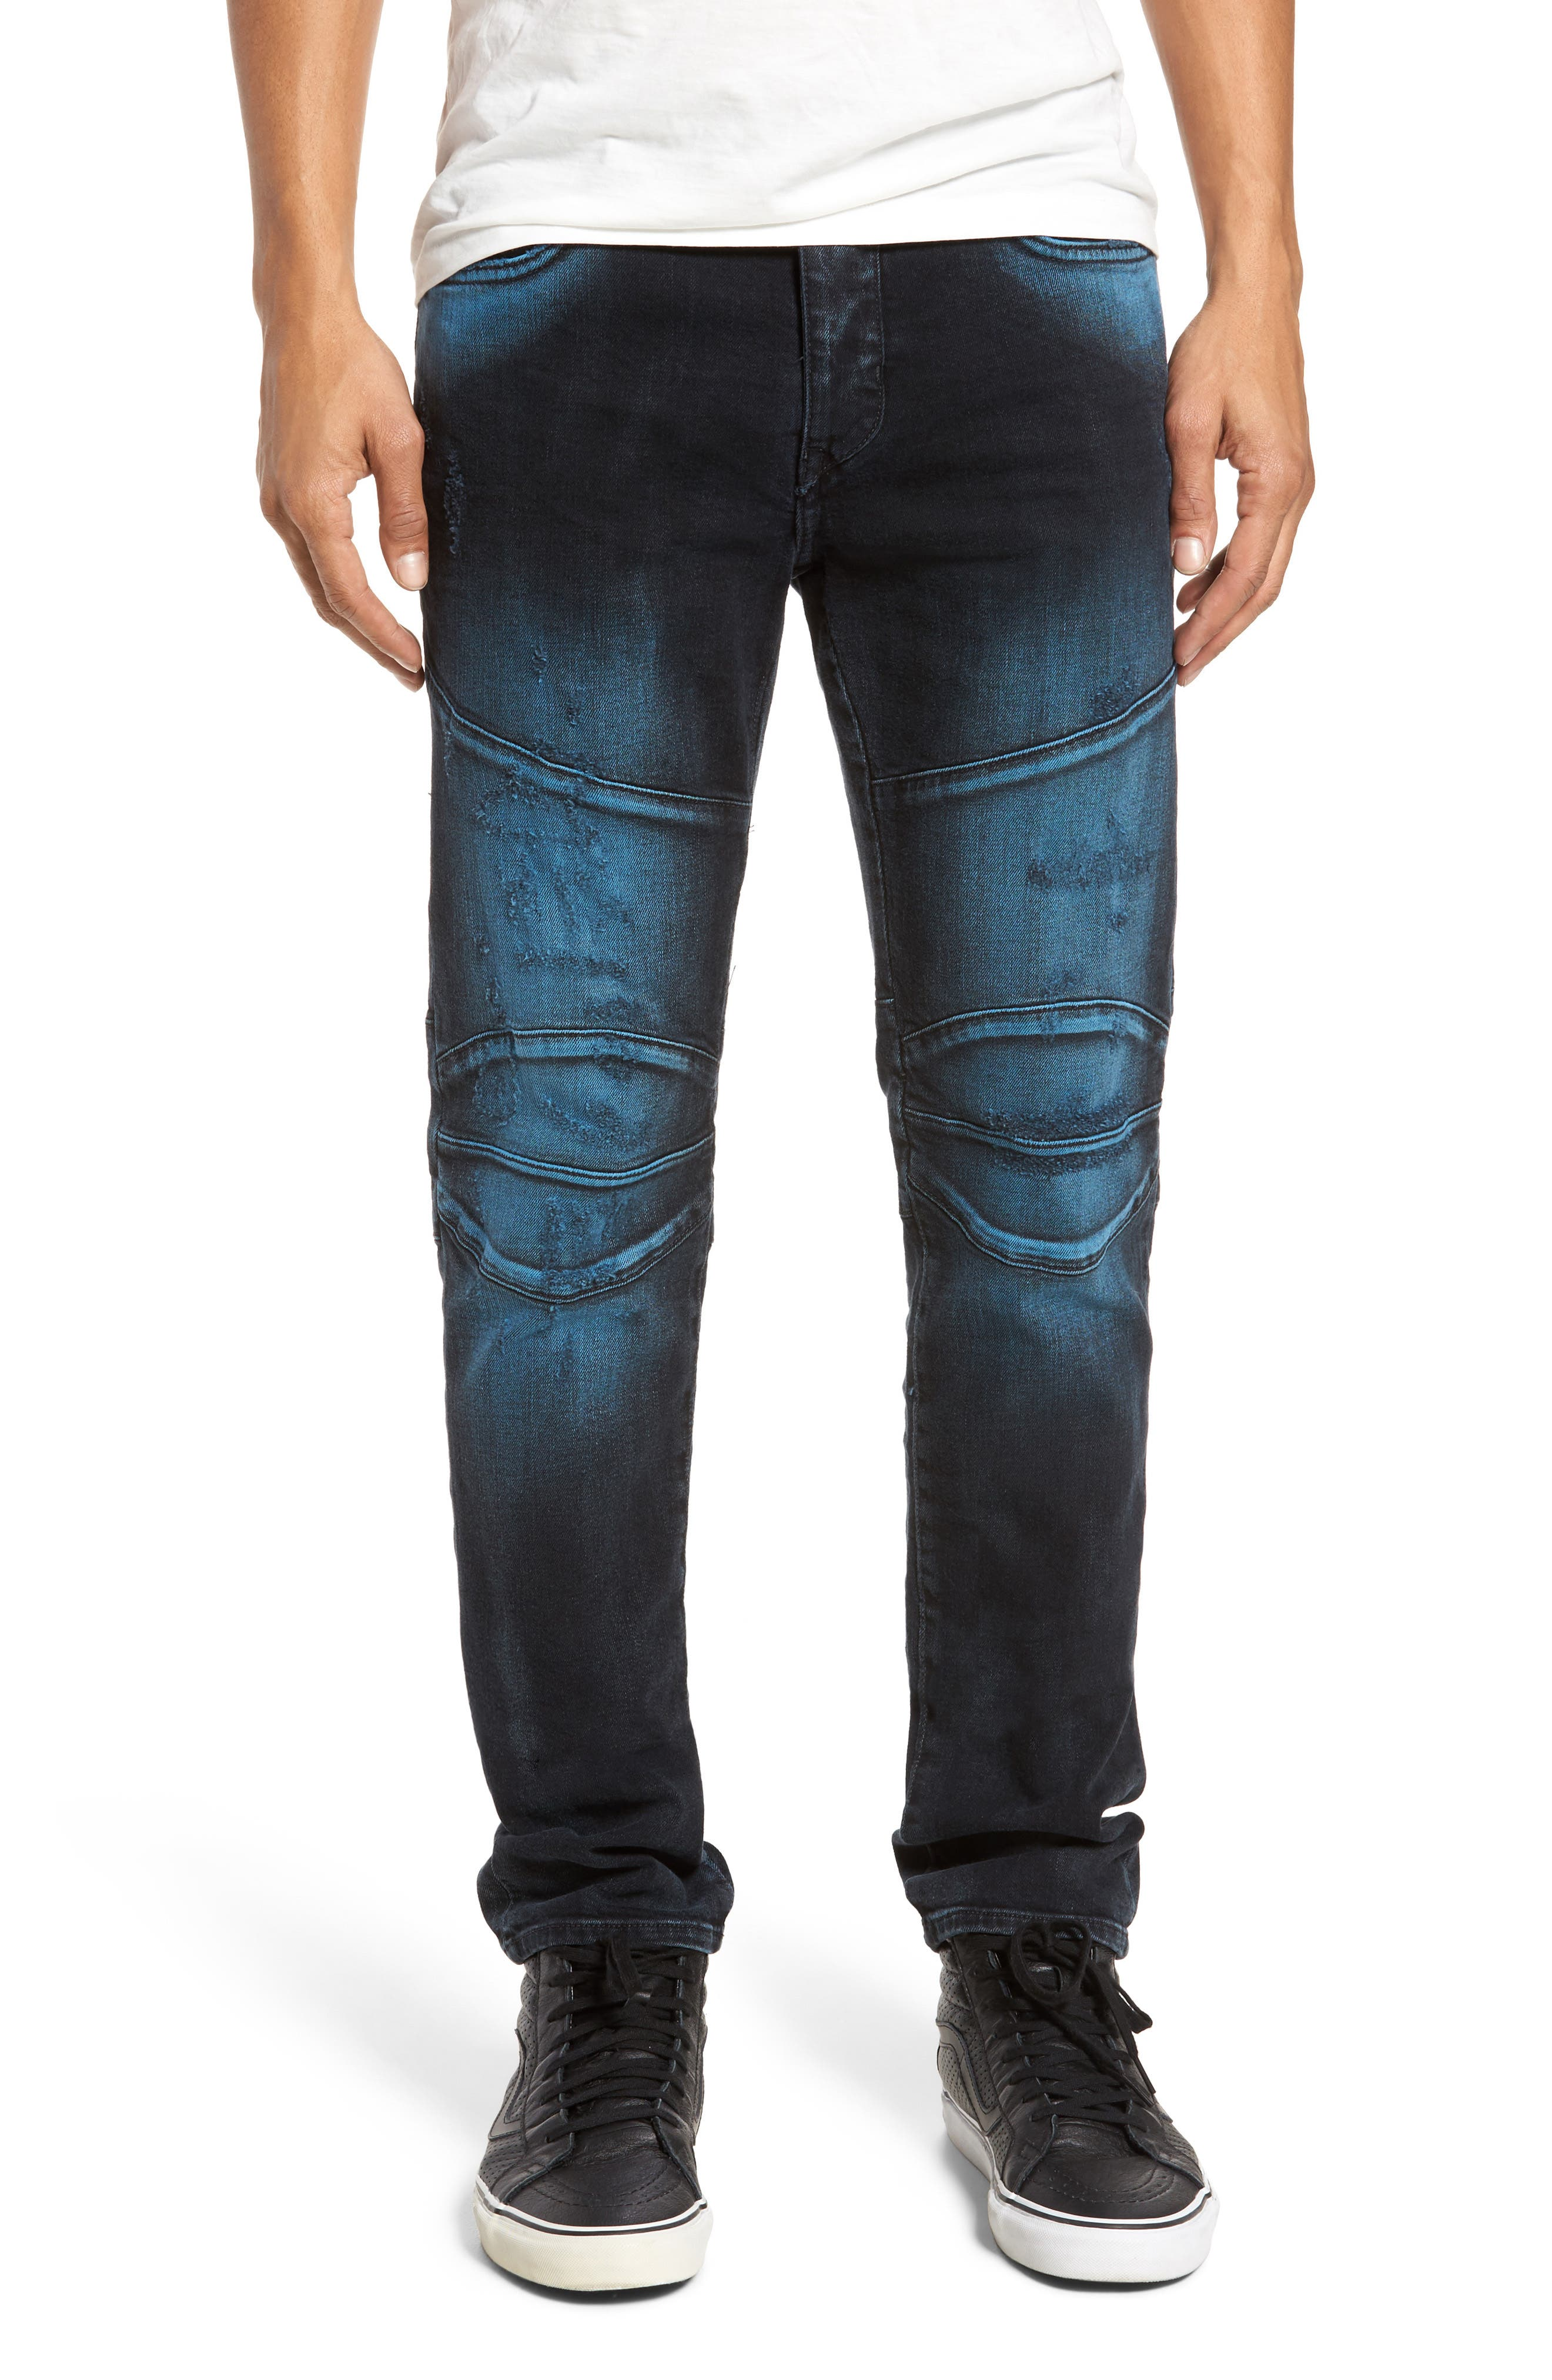 Rocco Skinny Fit Jeans,                         Main,                         color, Blue Blaze